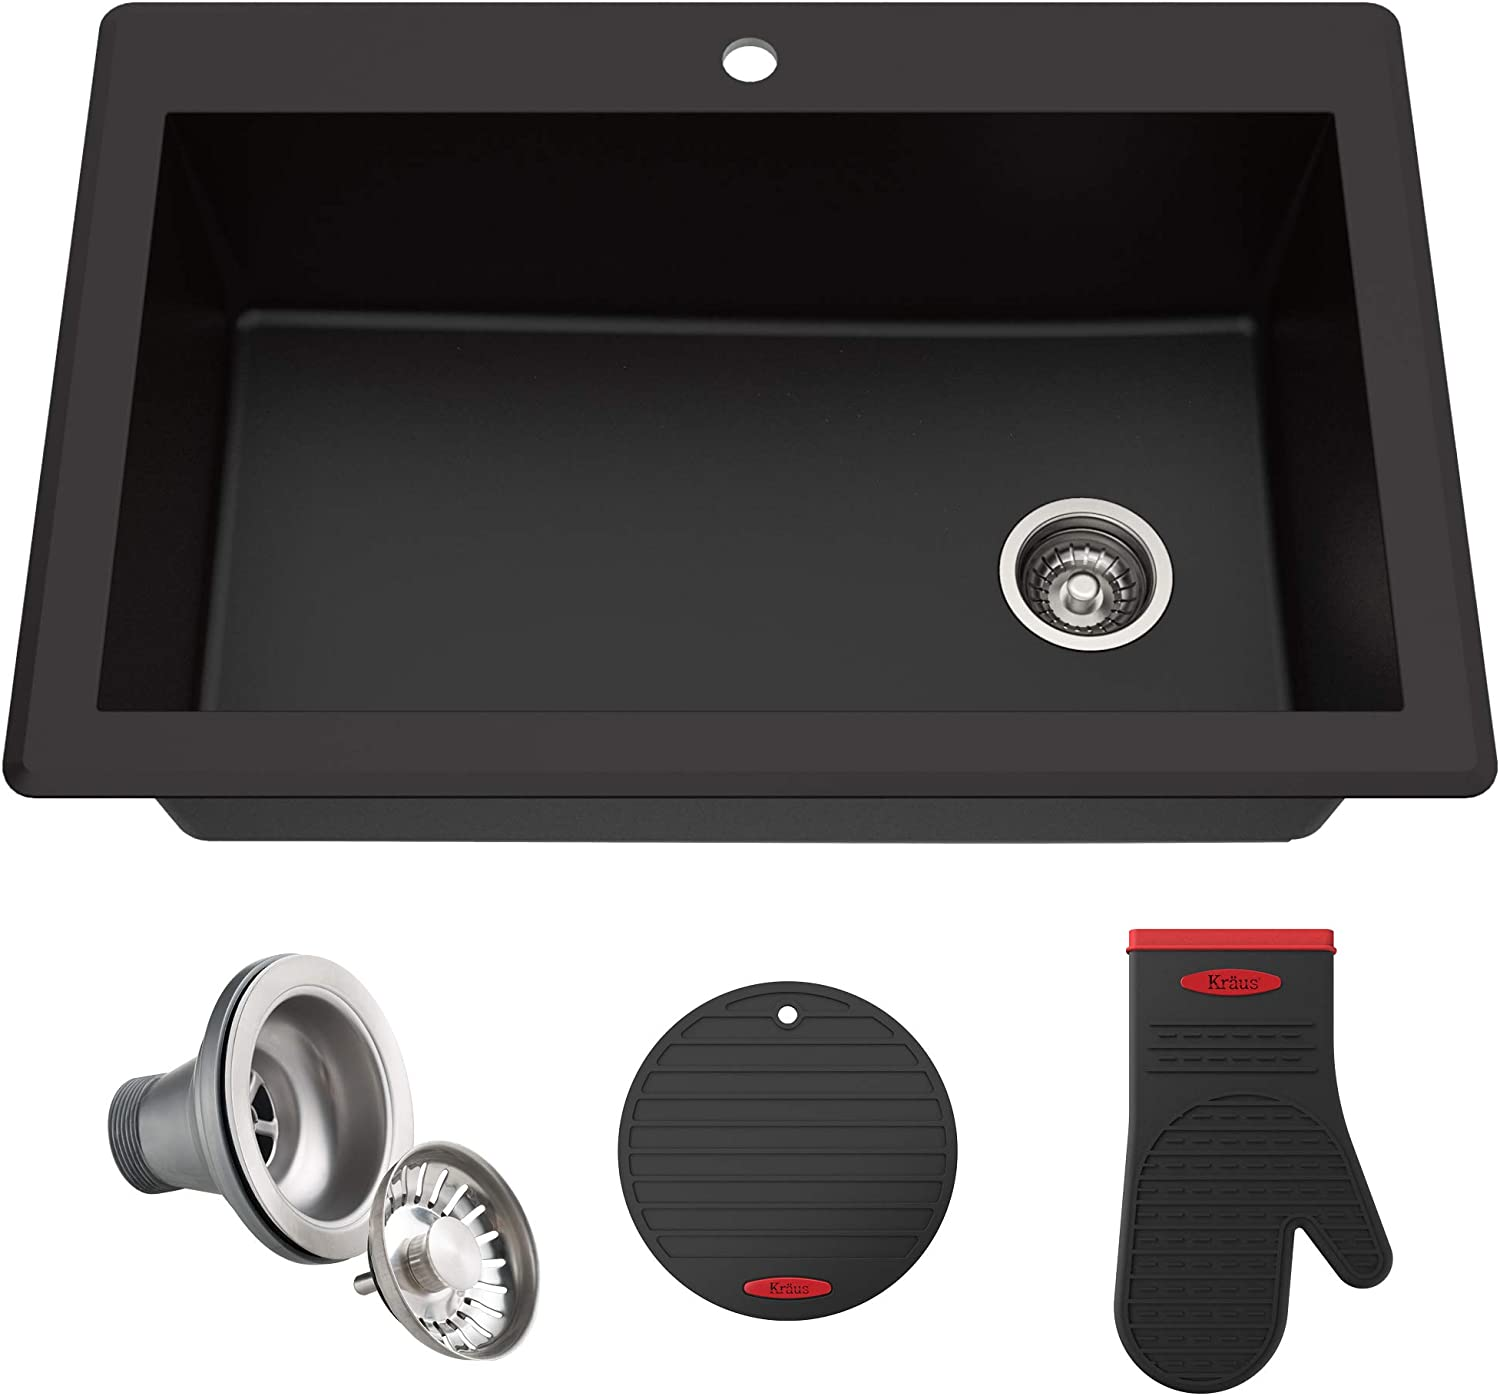 best granite sink: Kraus KGD-54BLACK Forteza Granite Kitchen Sink